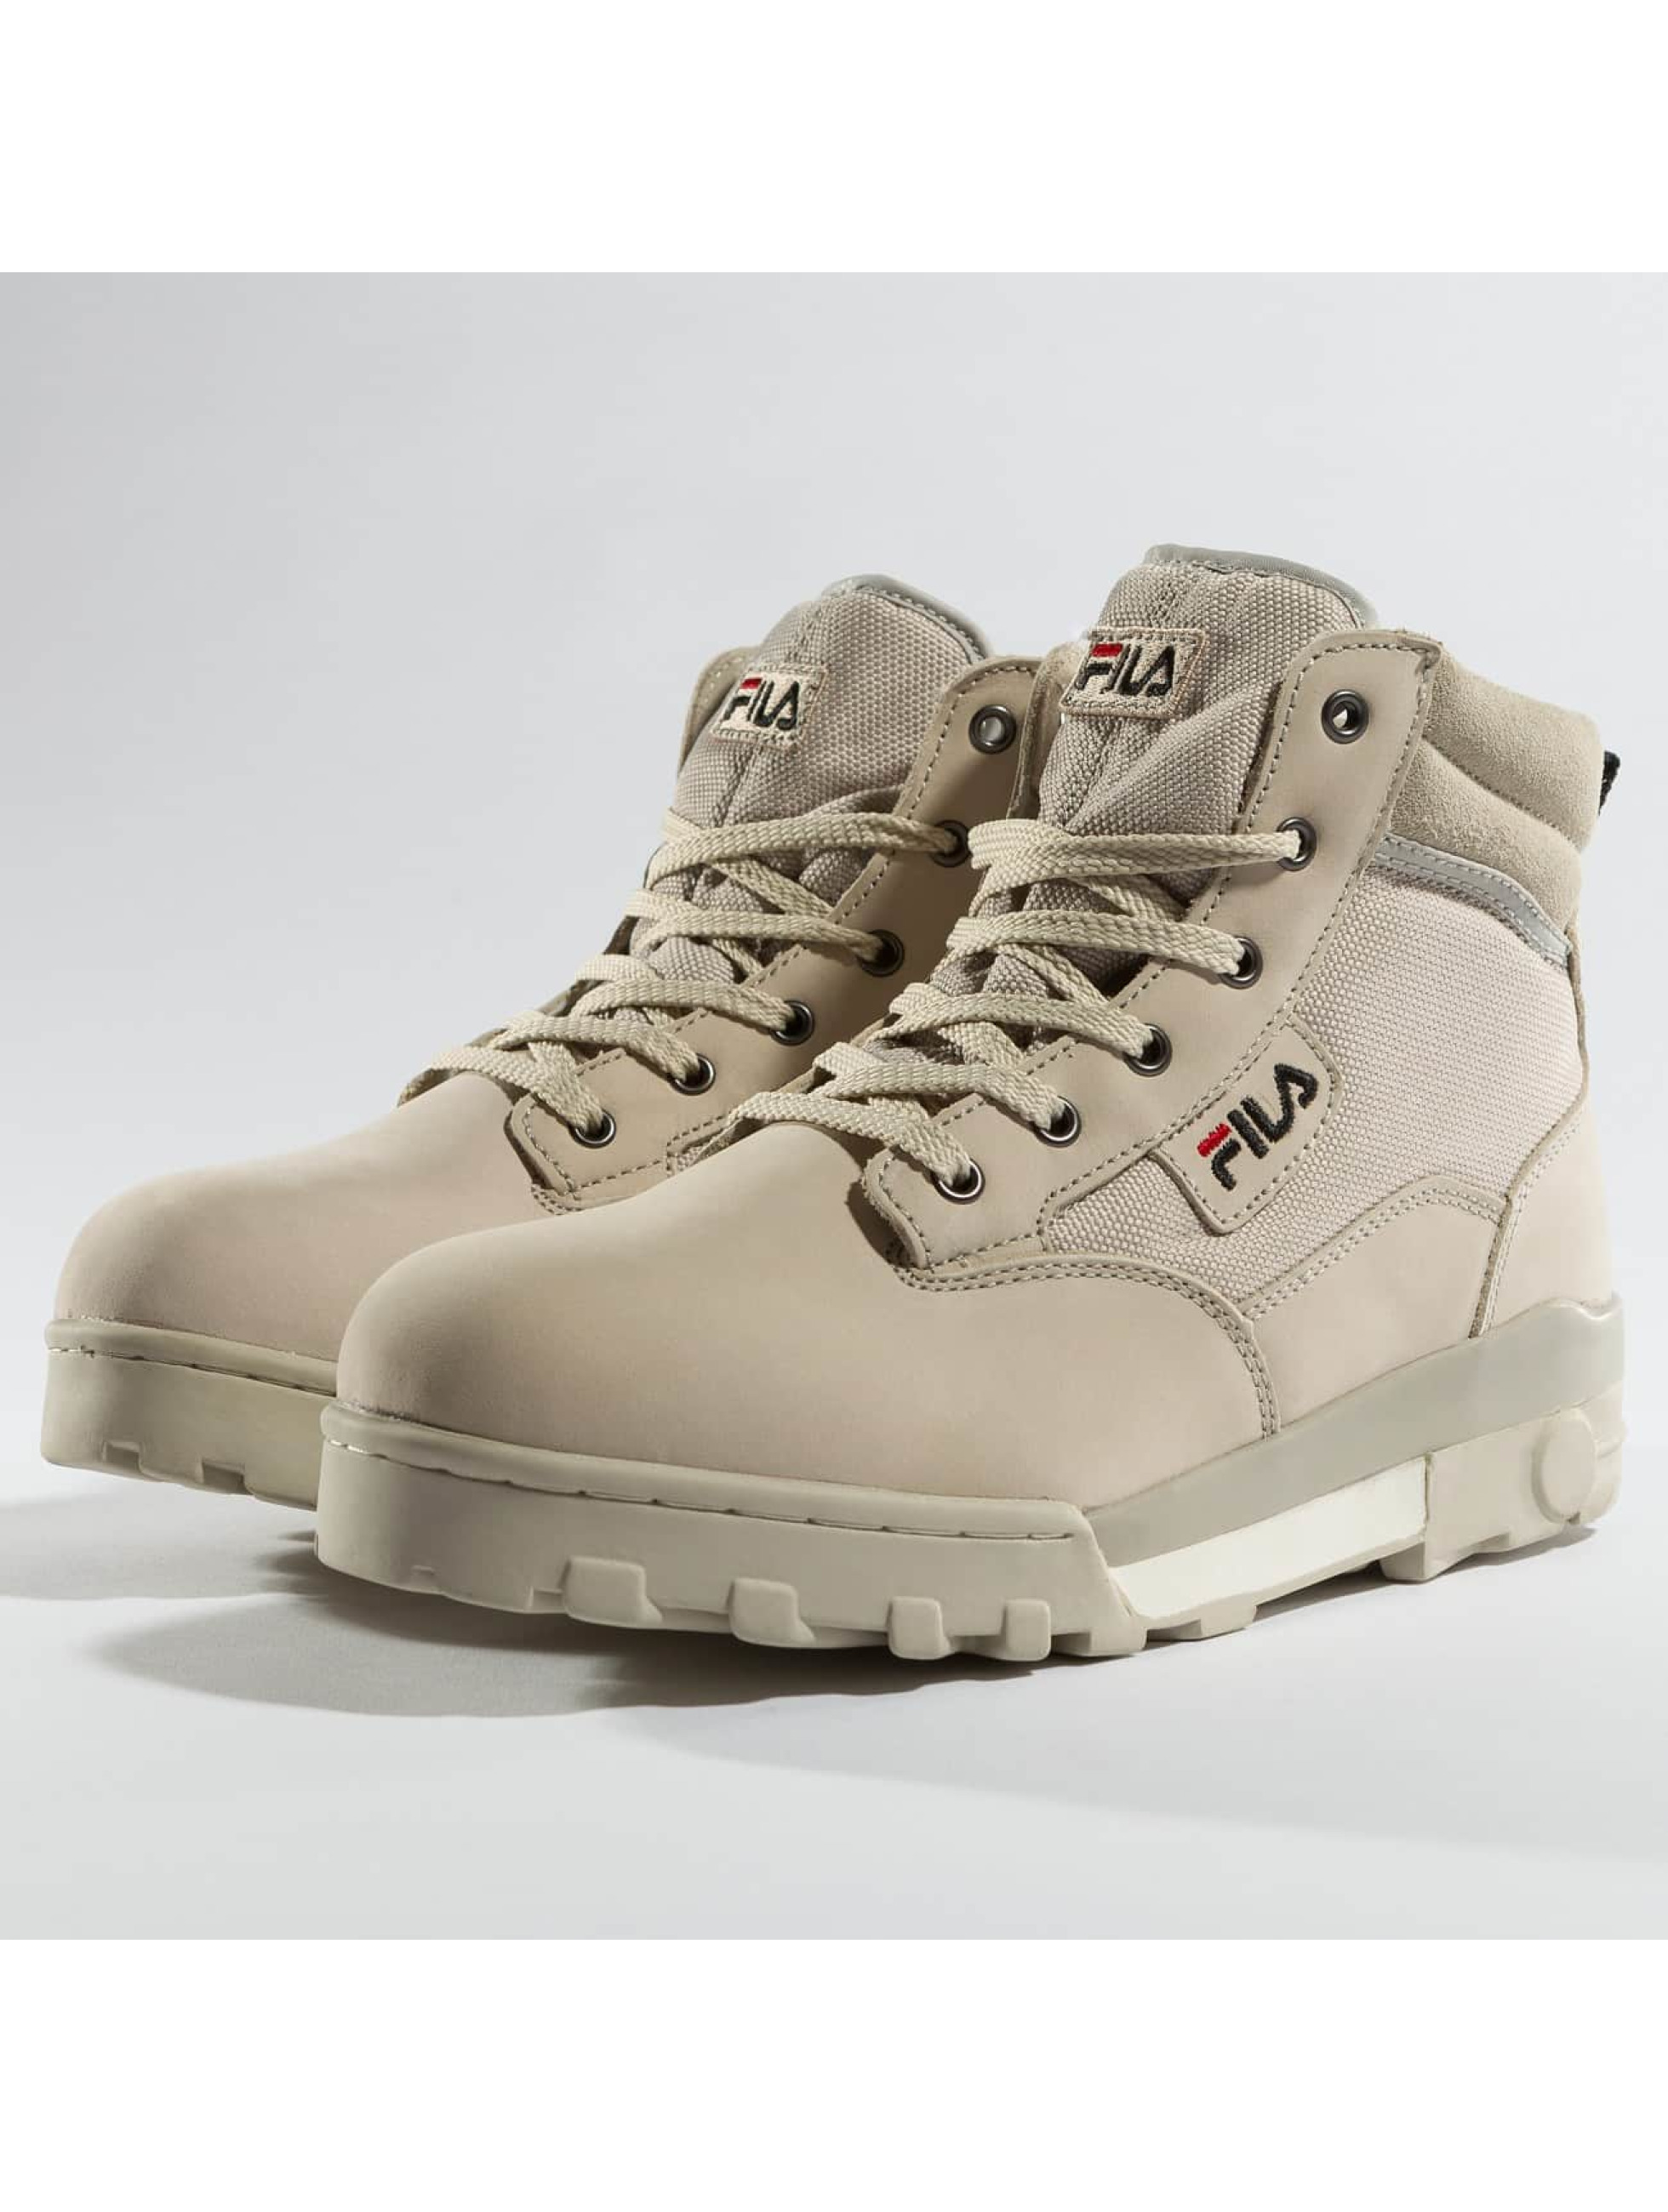 fila herren boots heritage grunge mid in beige 392097. Black Bedroom Furniture Sets. Home Design Ideas